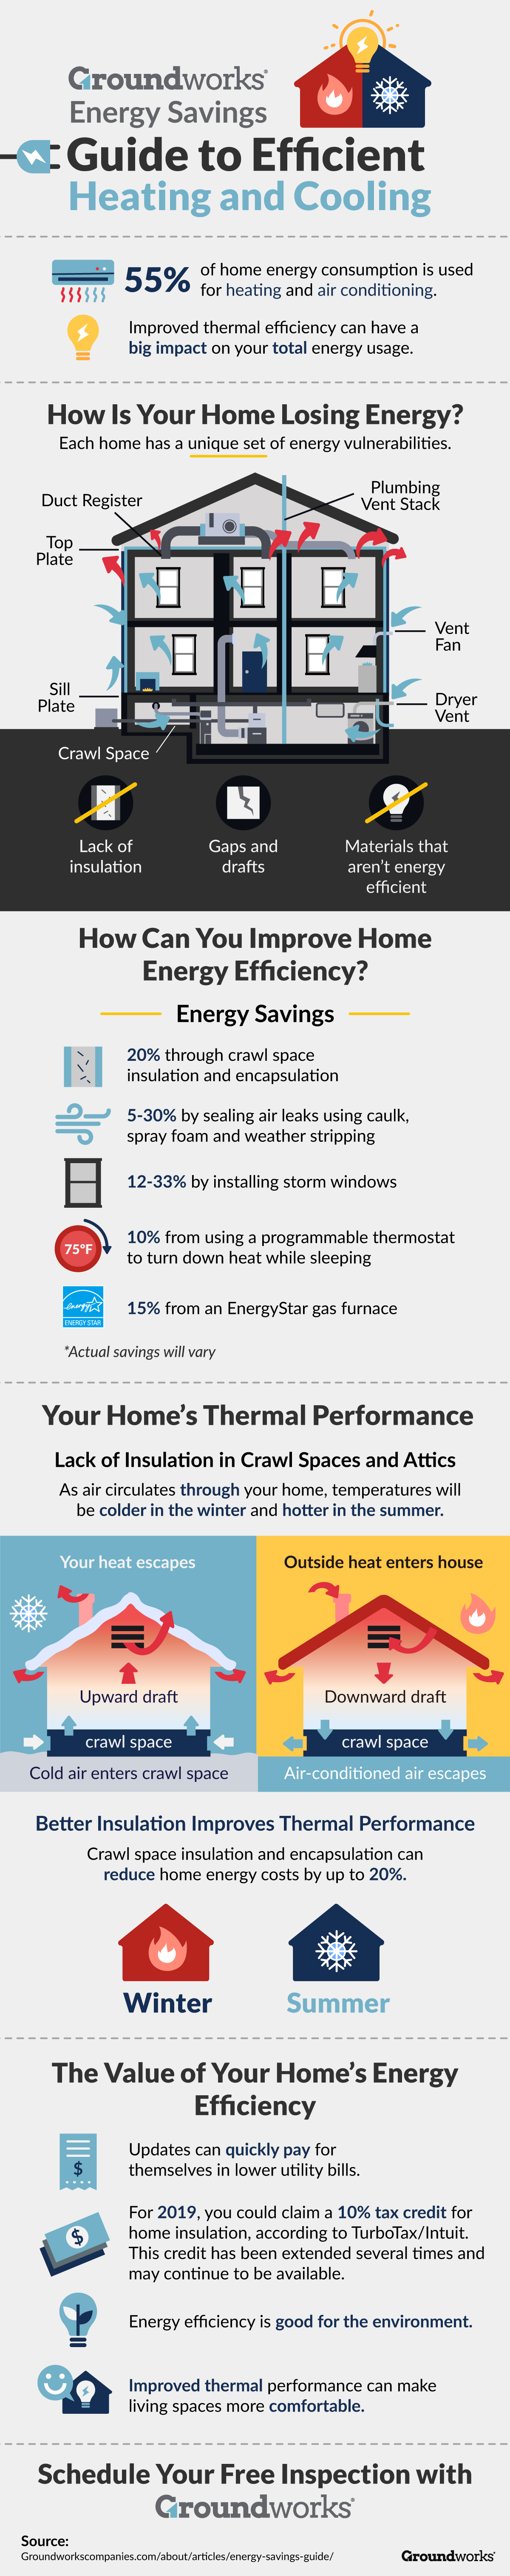 energy-savings-tips-for-homeowners-to-reduce-their-heating-and-cooling-costs-infographic